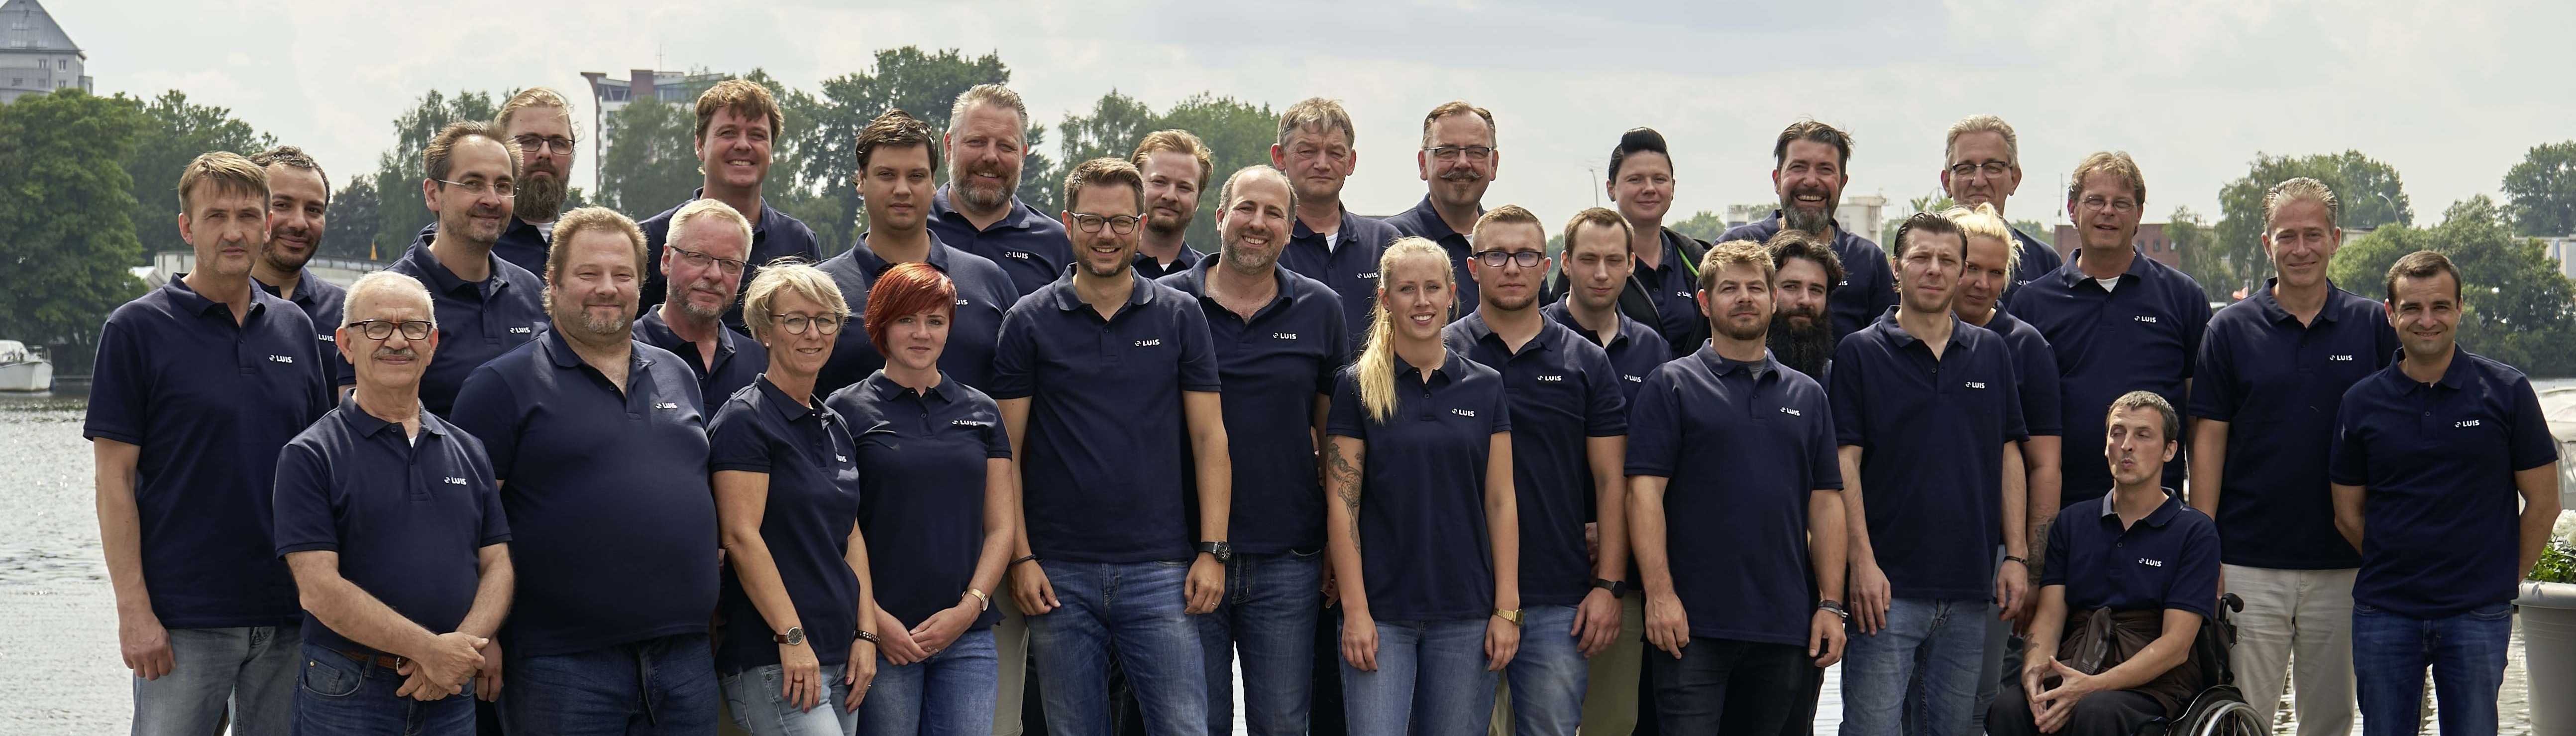 LUIS Technology GmbH - Team-Foto